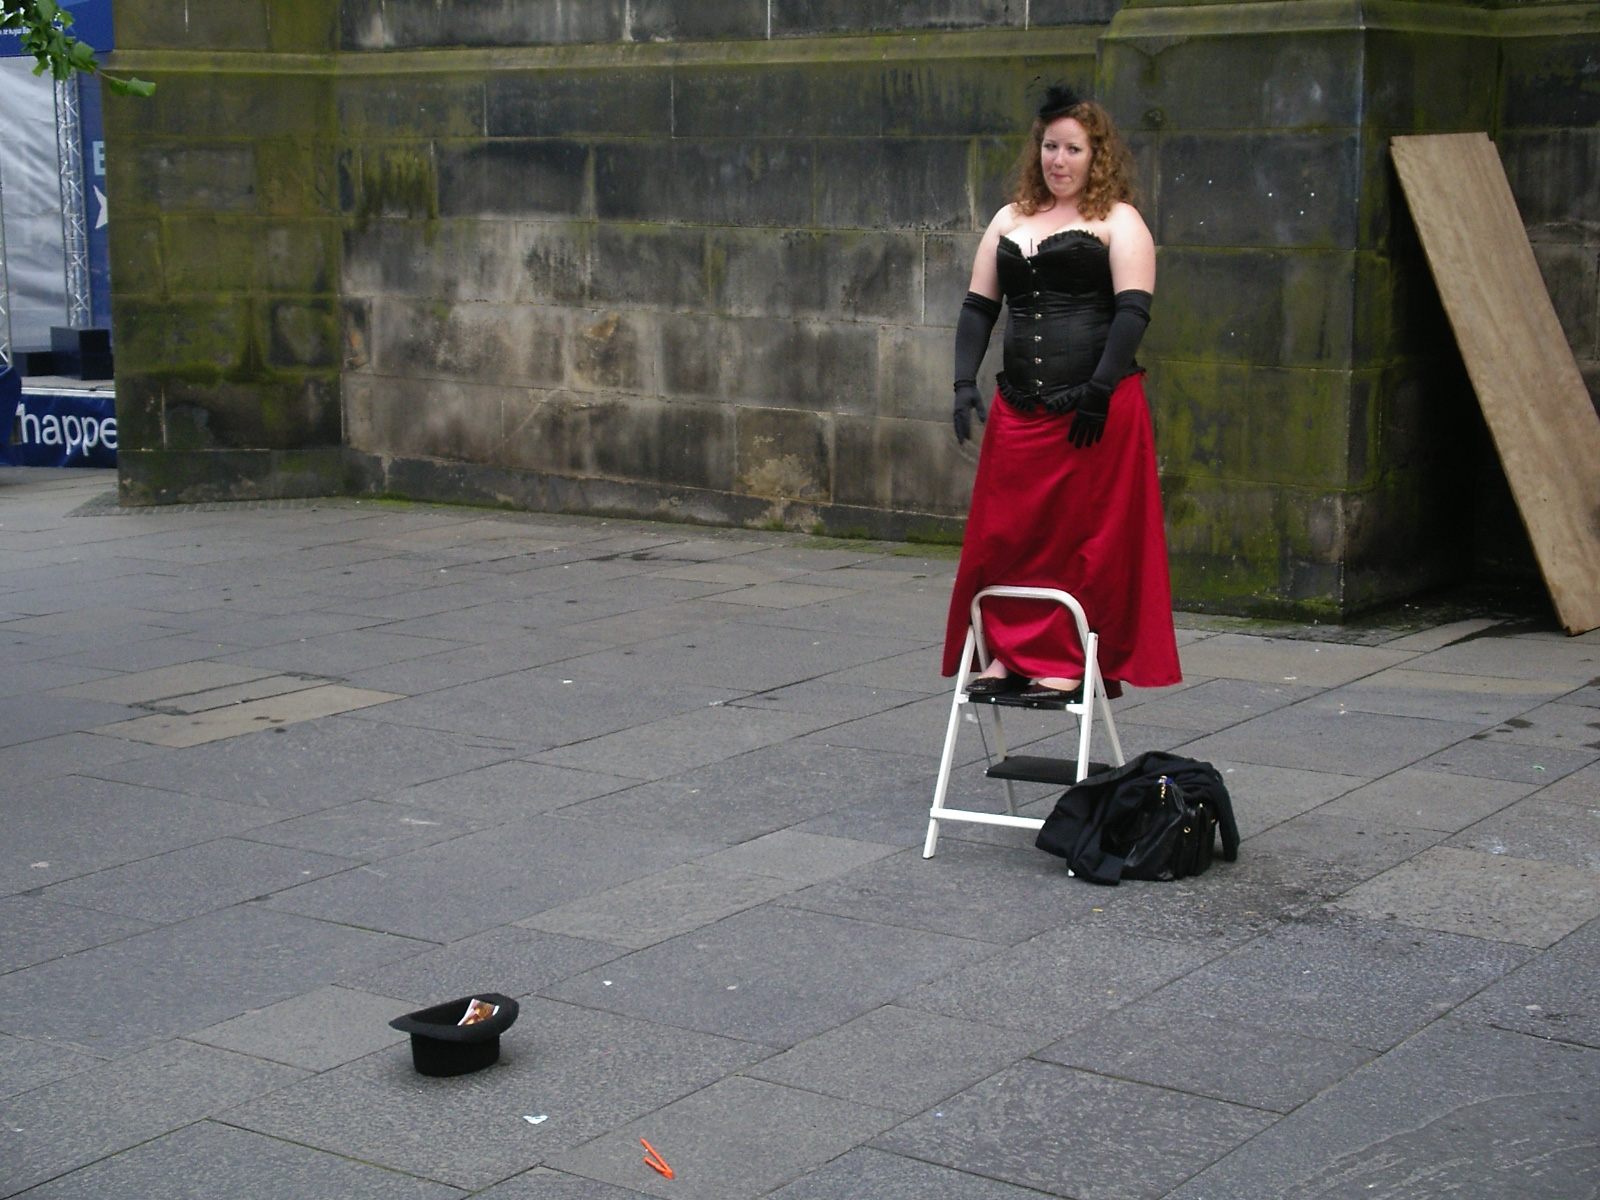 Opera singer on the street, Edinburgh, in Fringe Festival